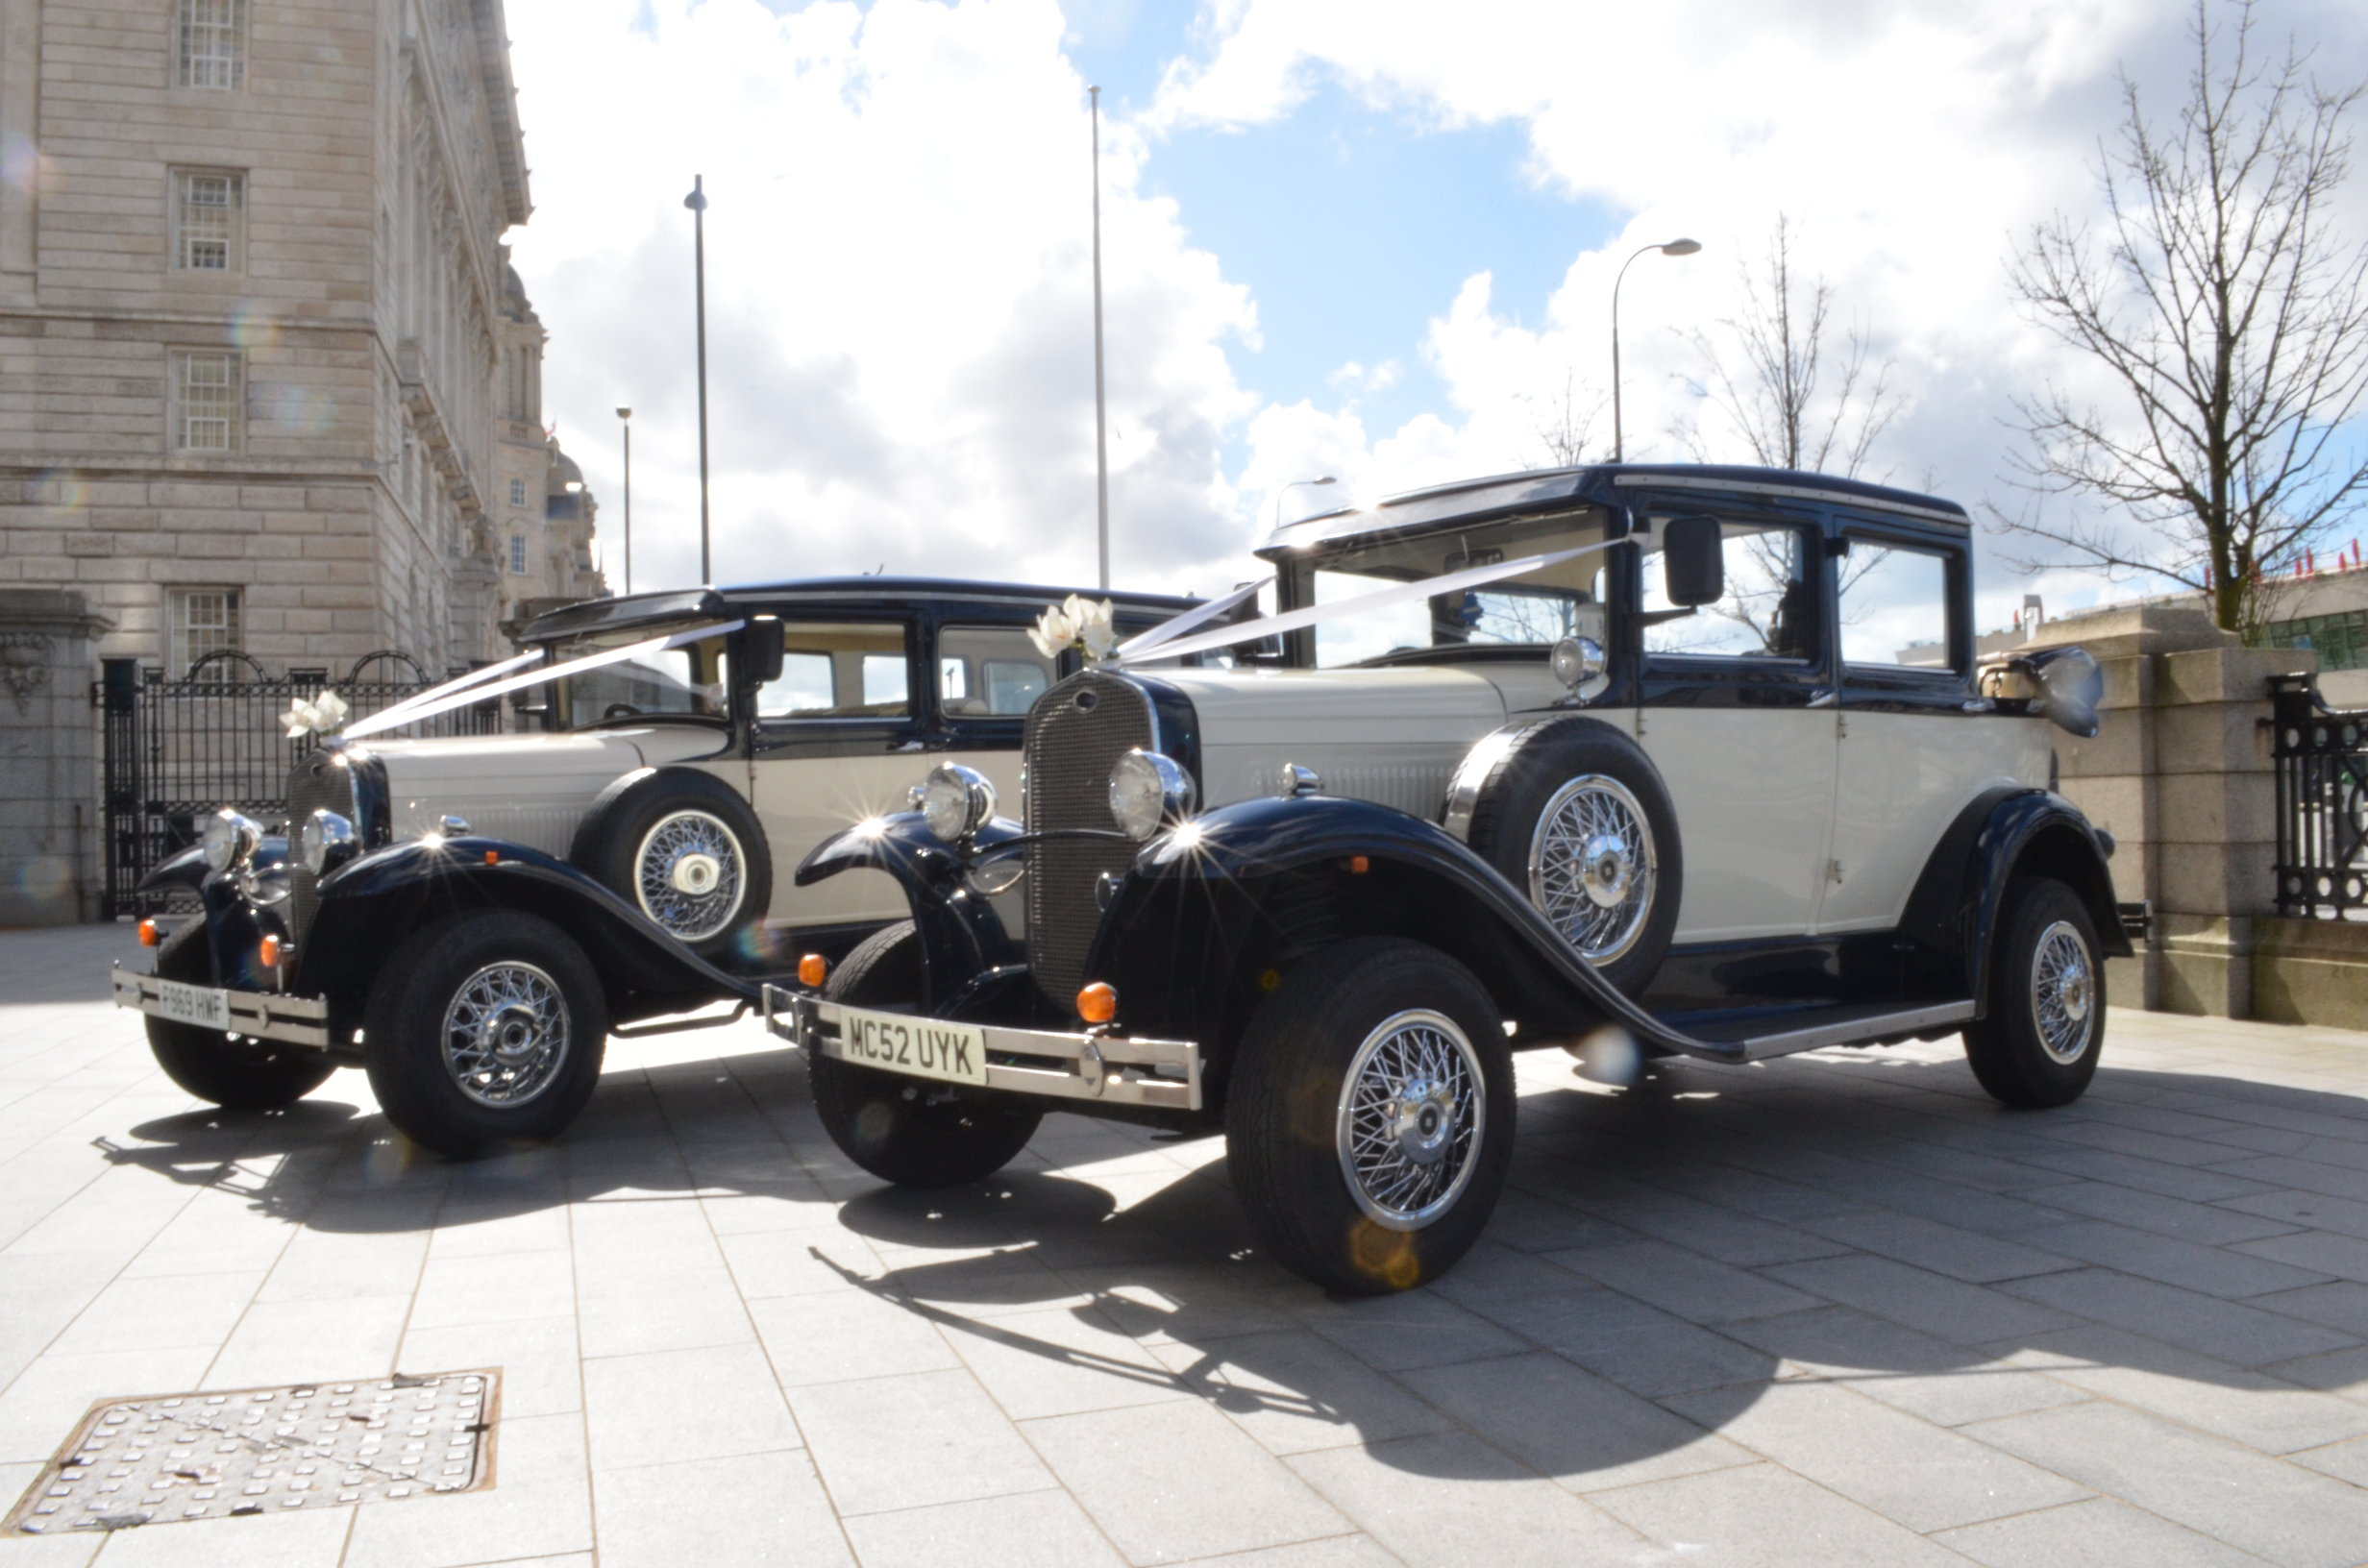 Wedding Cars Liverpool L12 1LQ